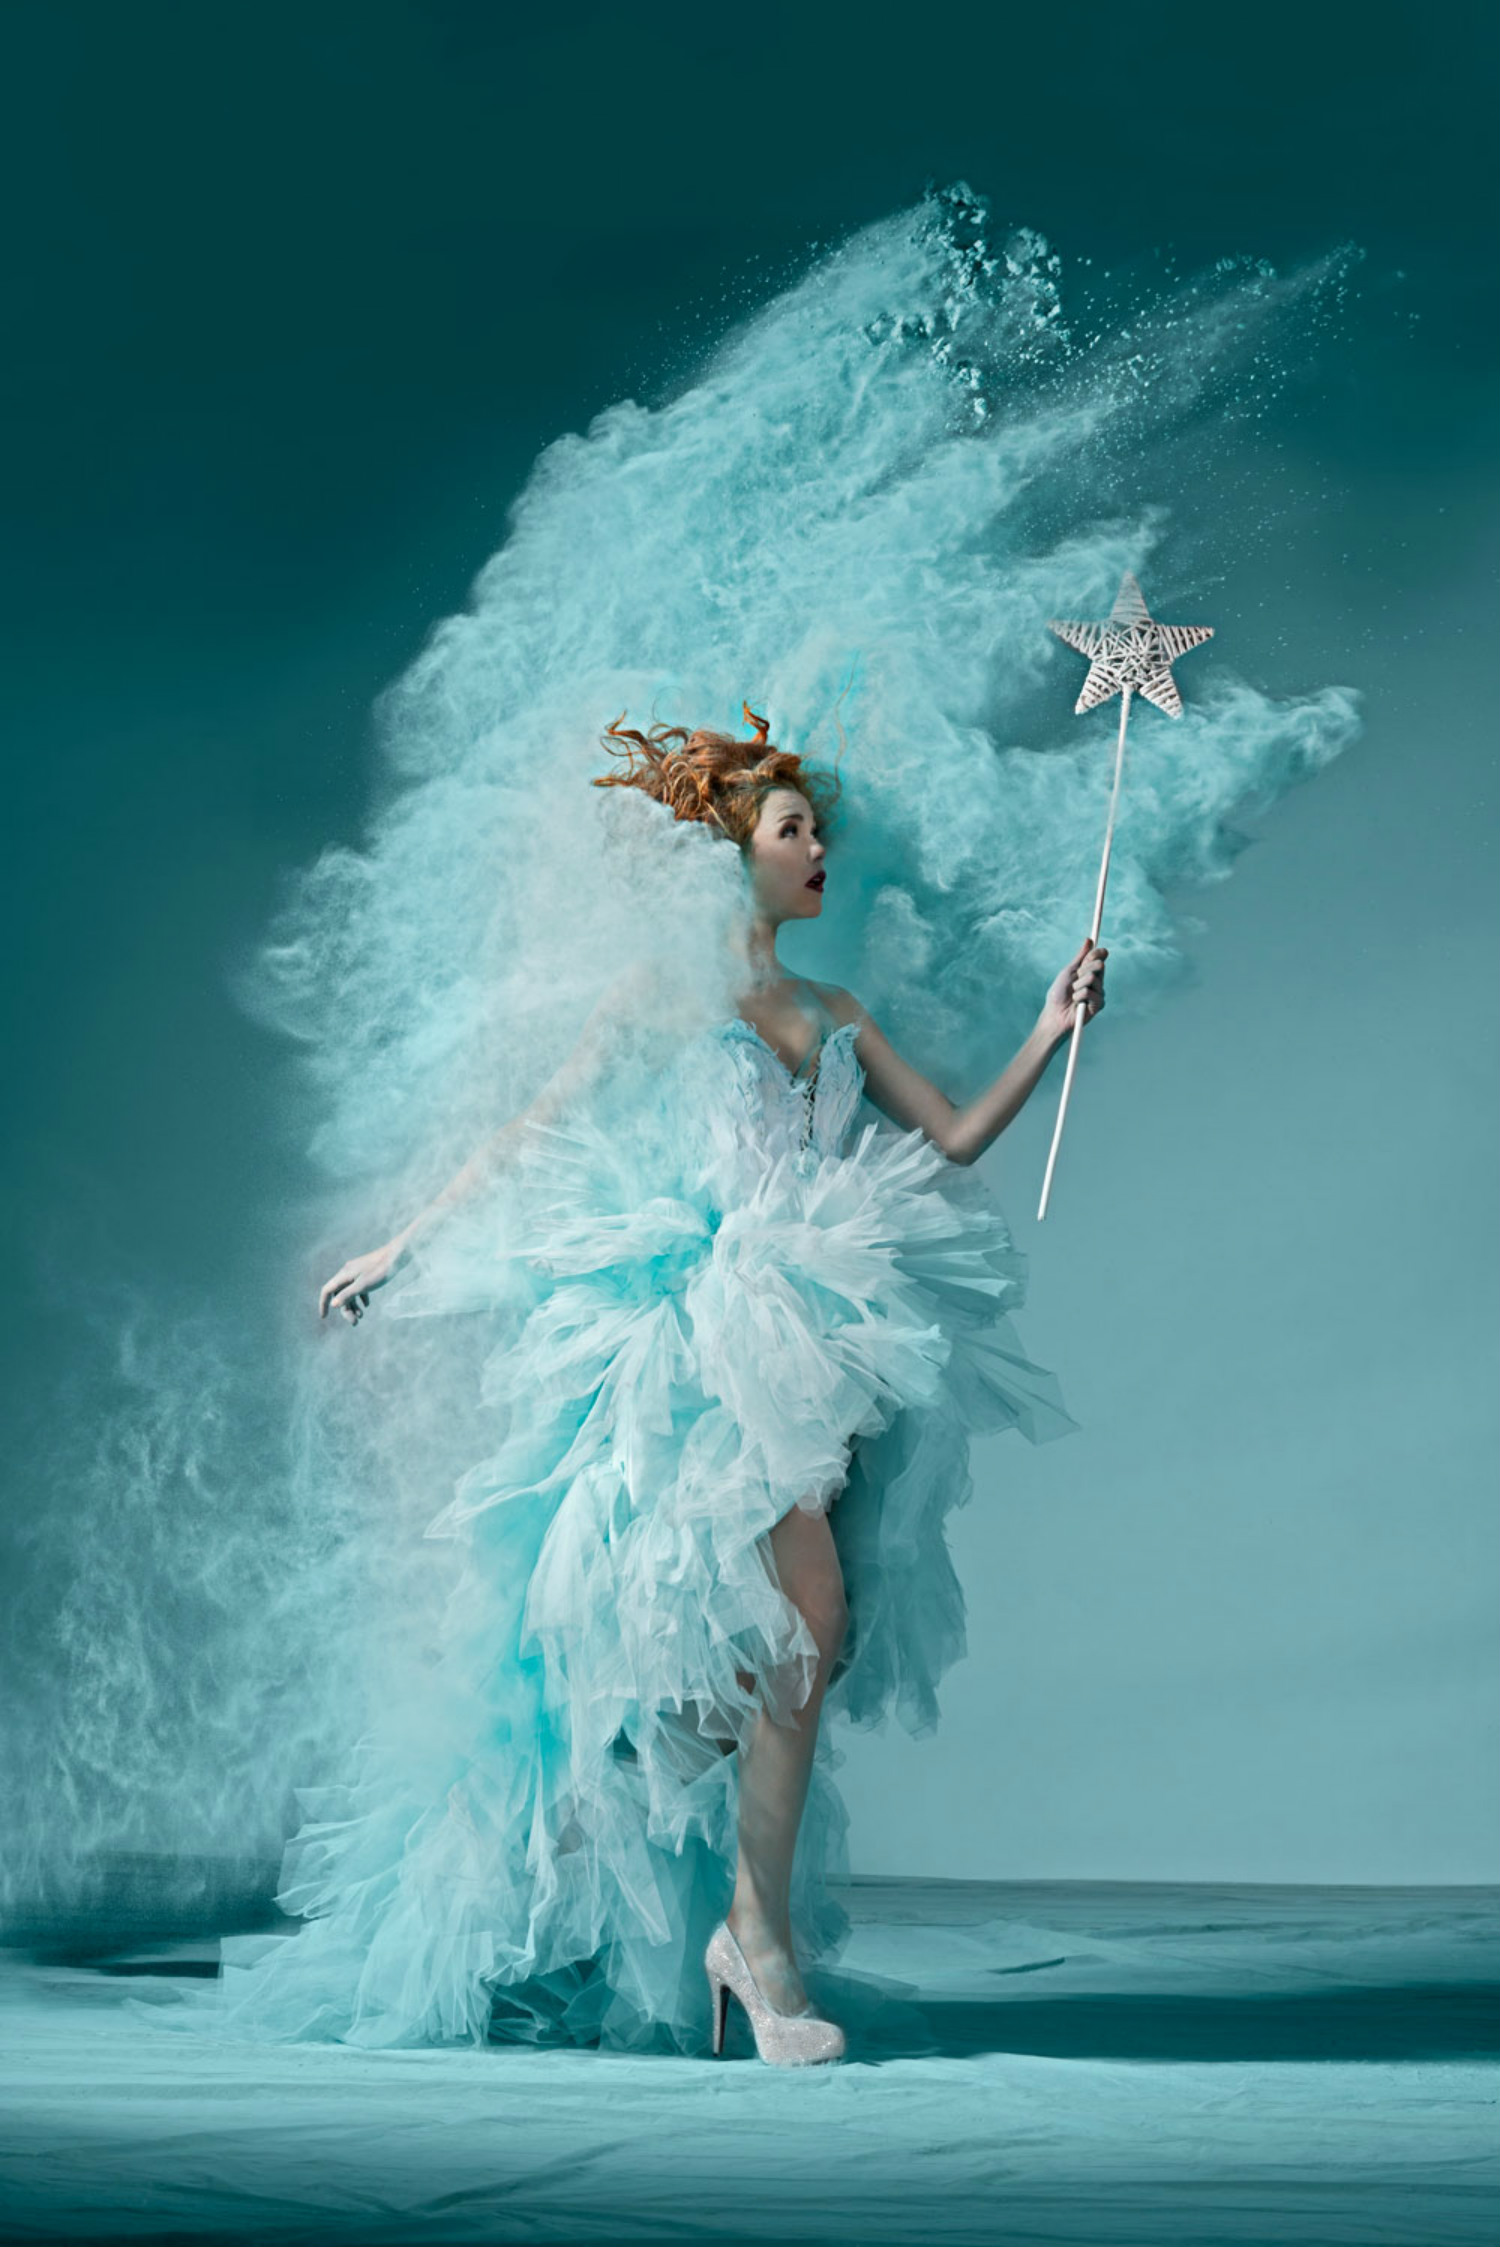 oliver oettli powder photography model fashion turquoise